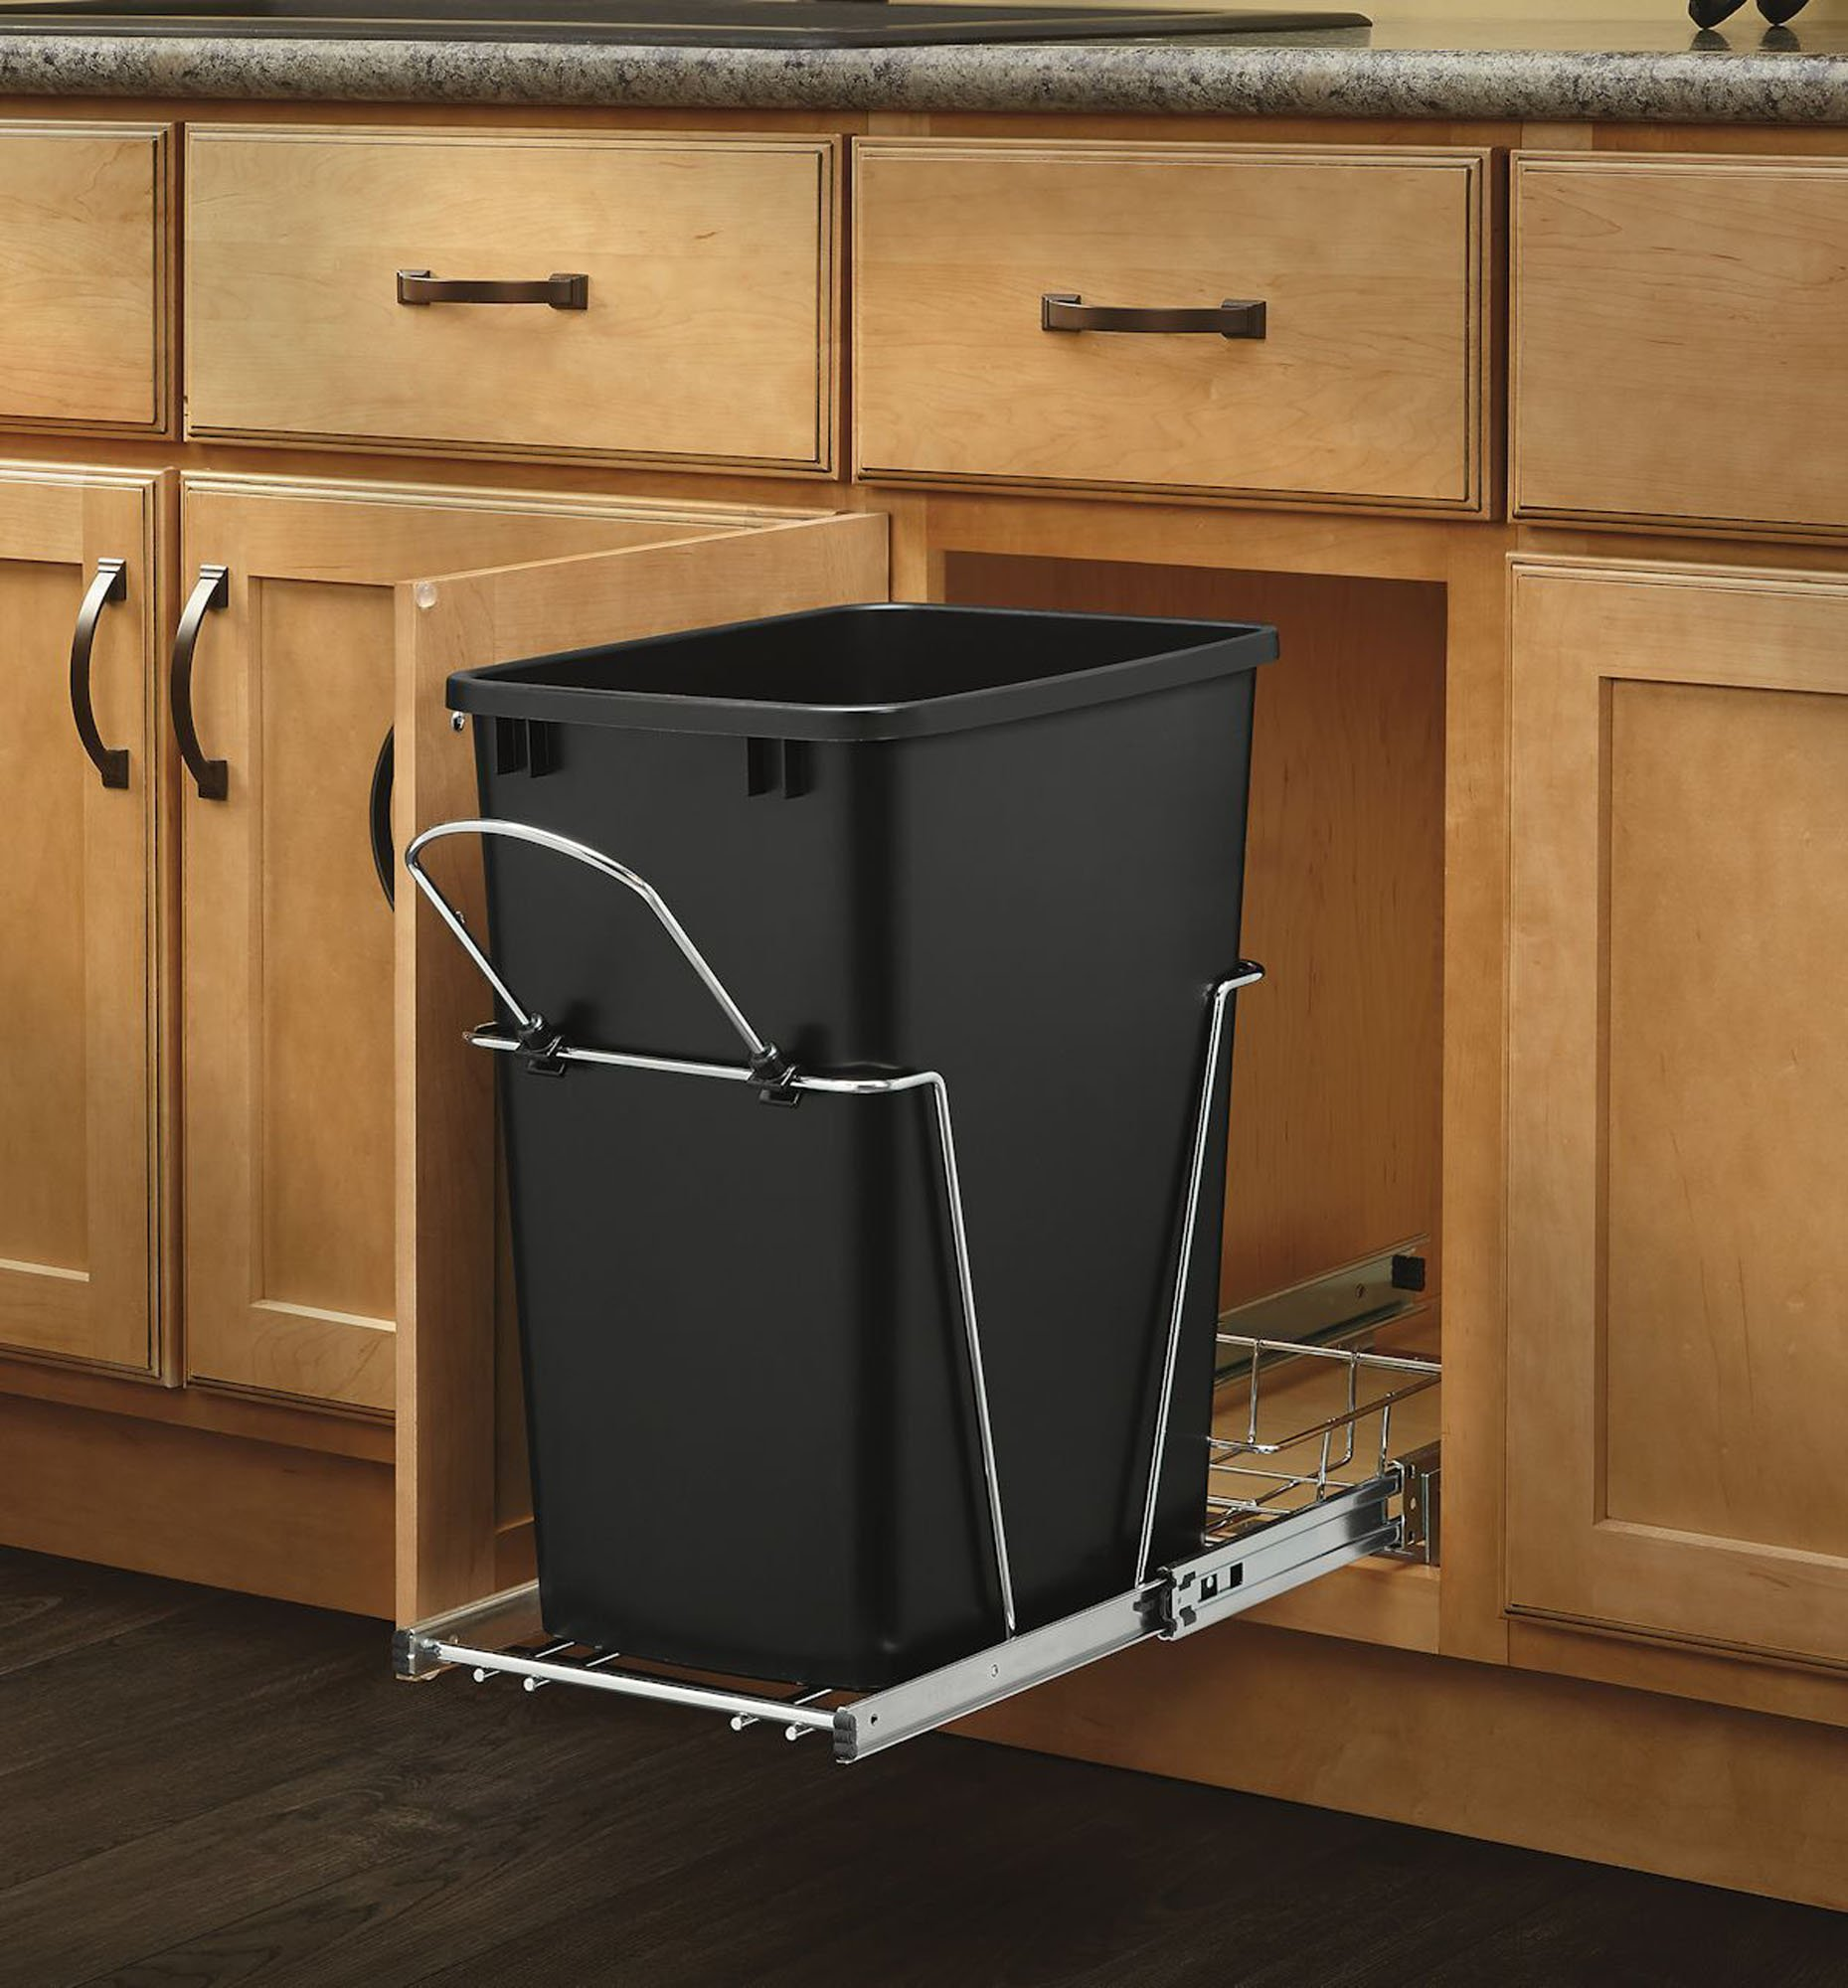 Kitchen Waste Bins: Rev A Shelf Pull Out Trash Can Garbage Bin Waste Container